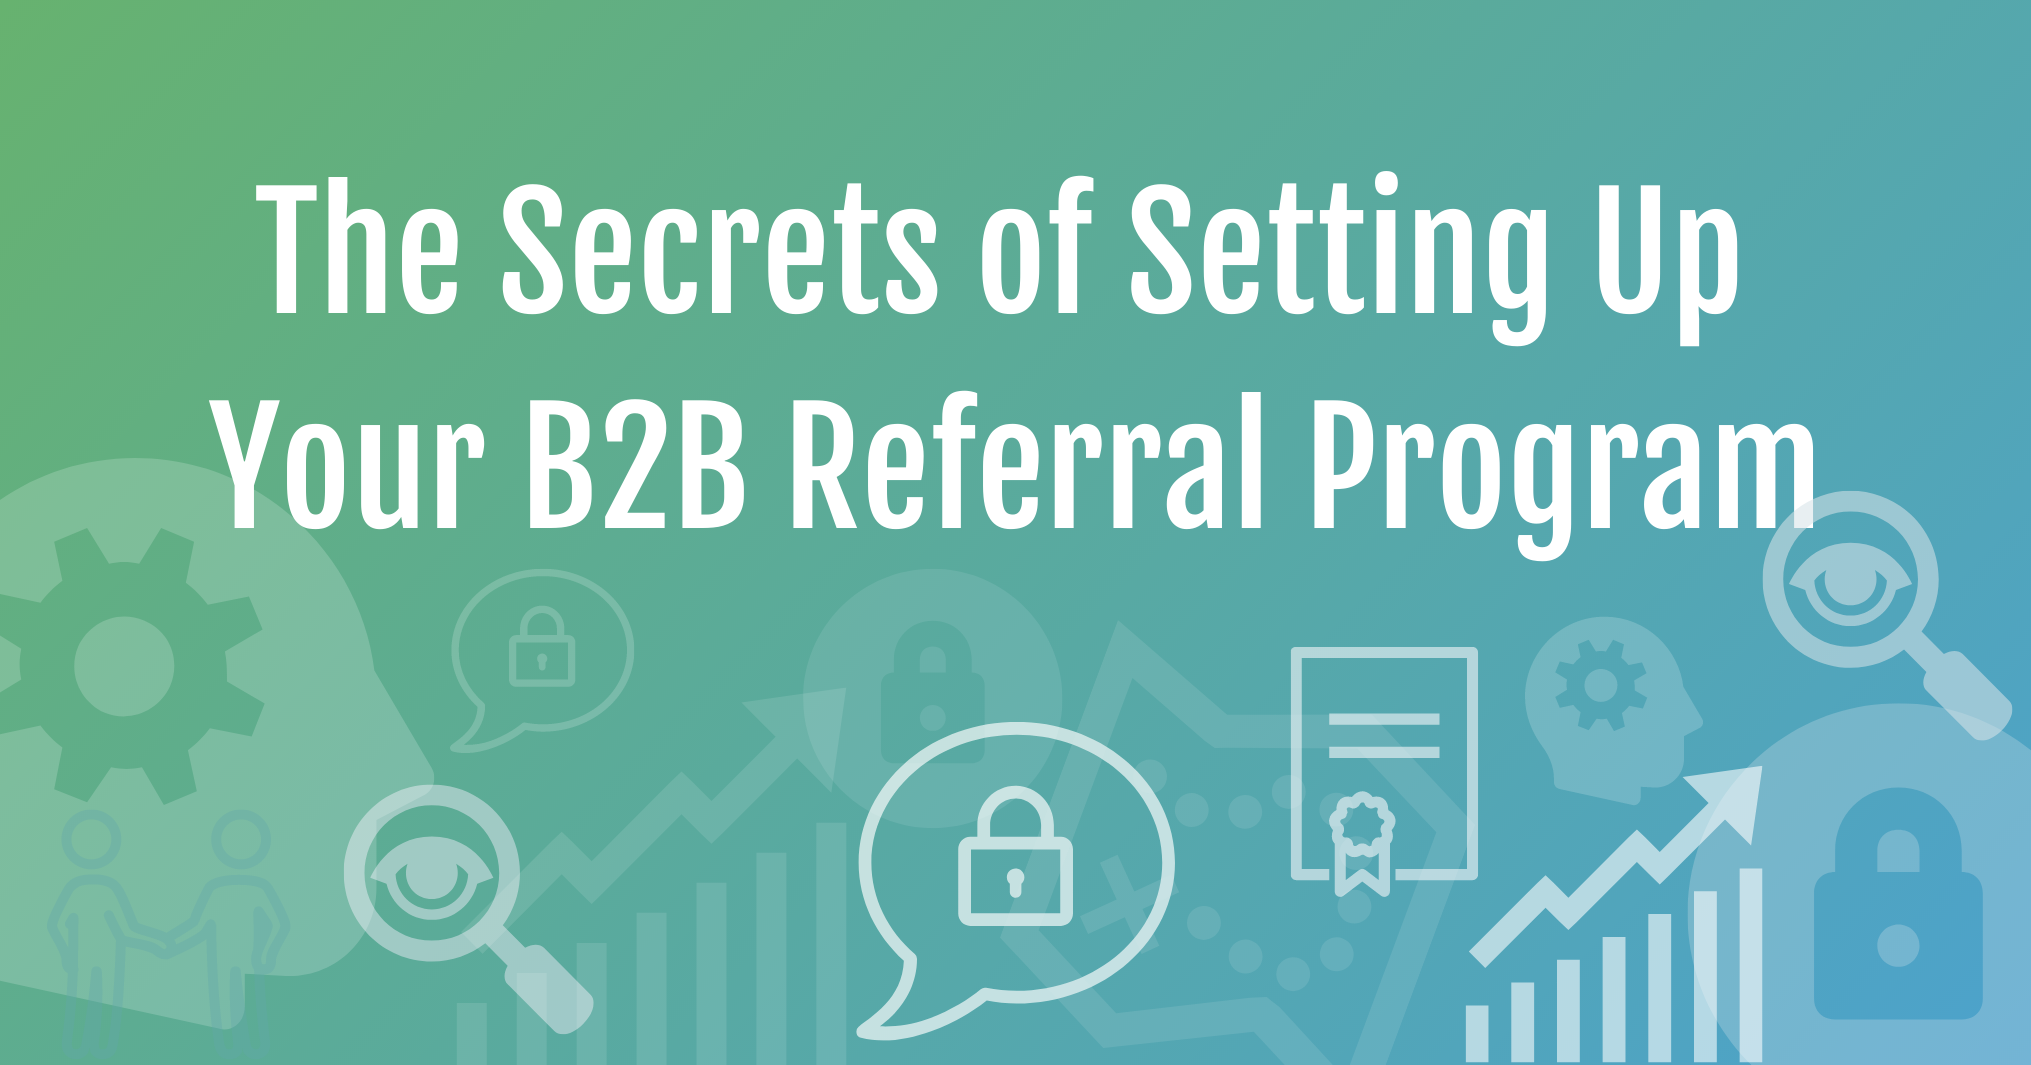 The Secrets of Setting Up Your B2B Referral Program.